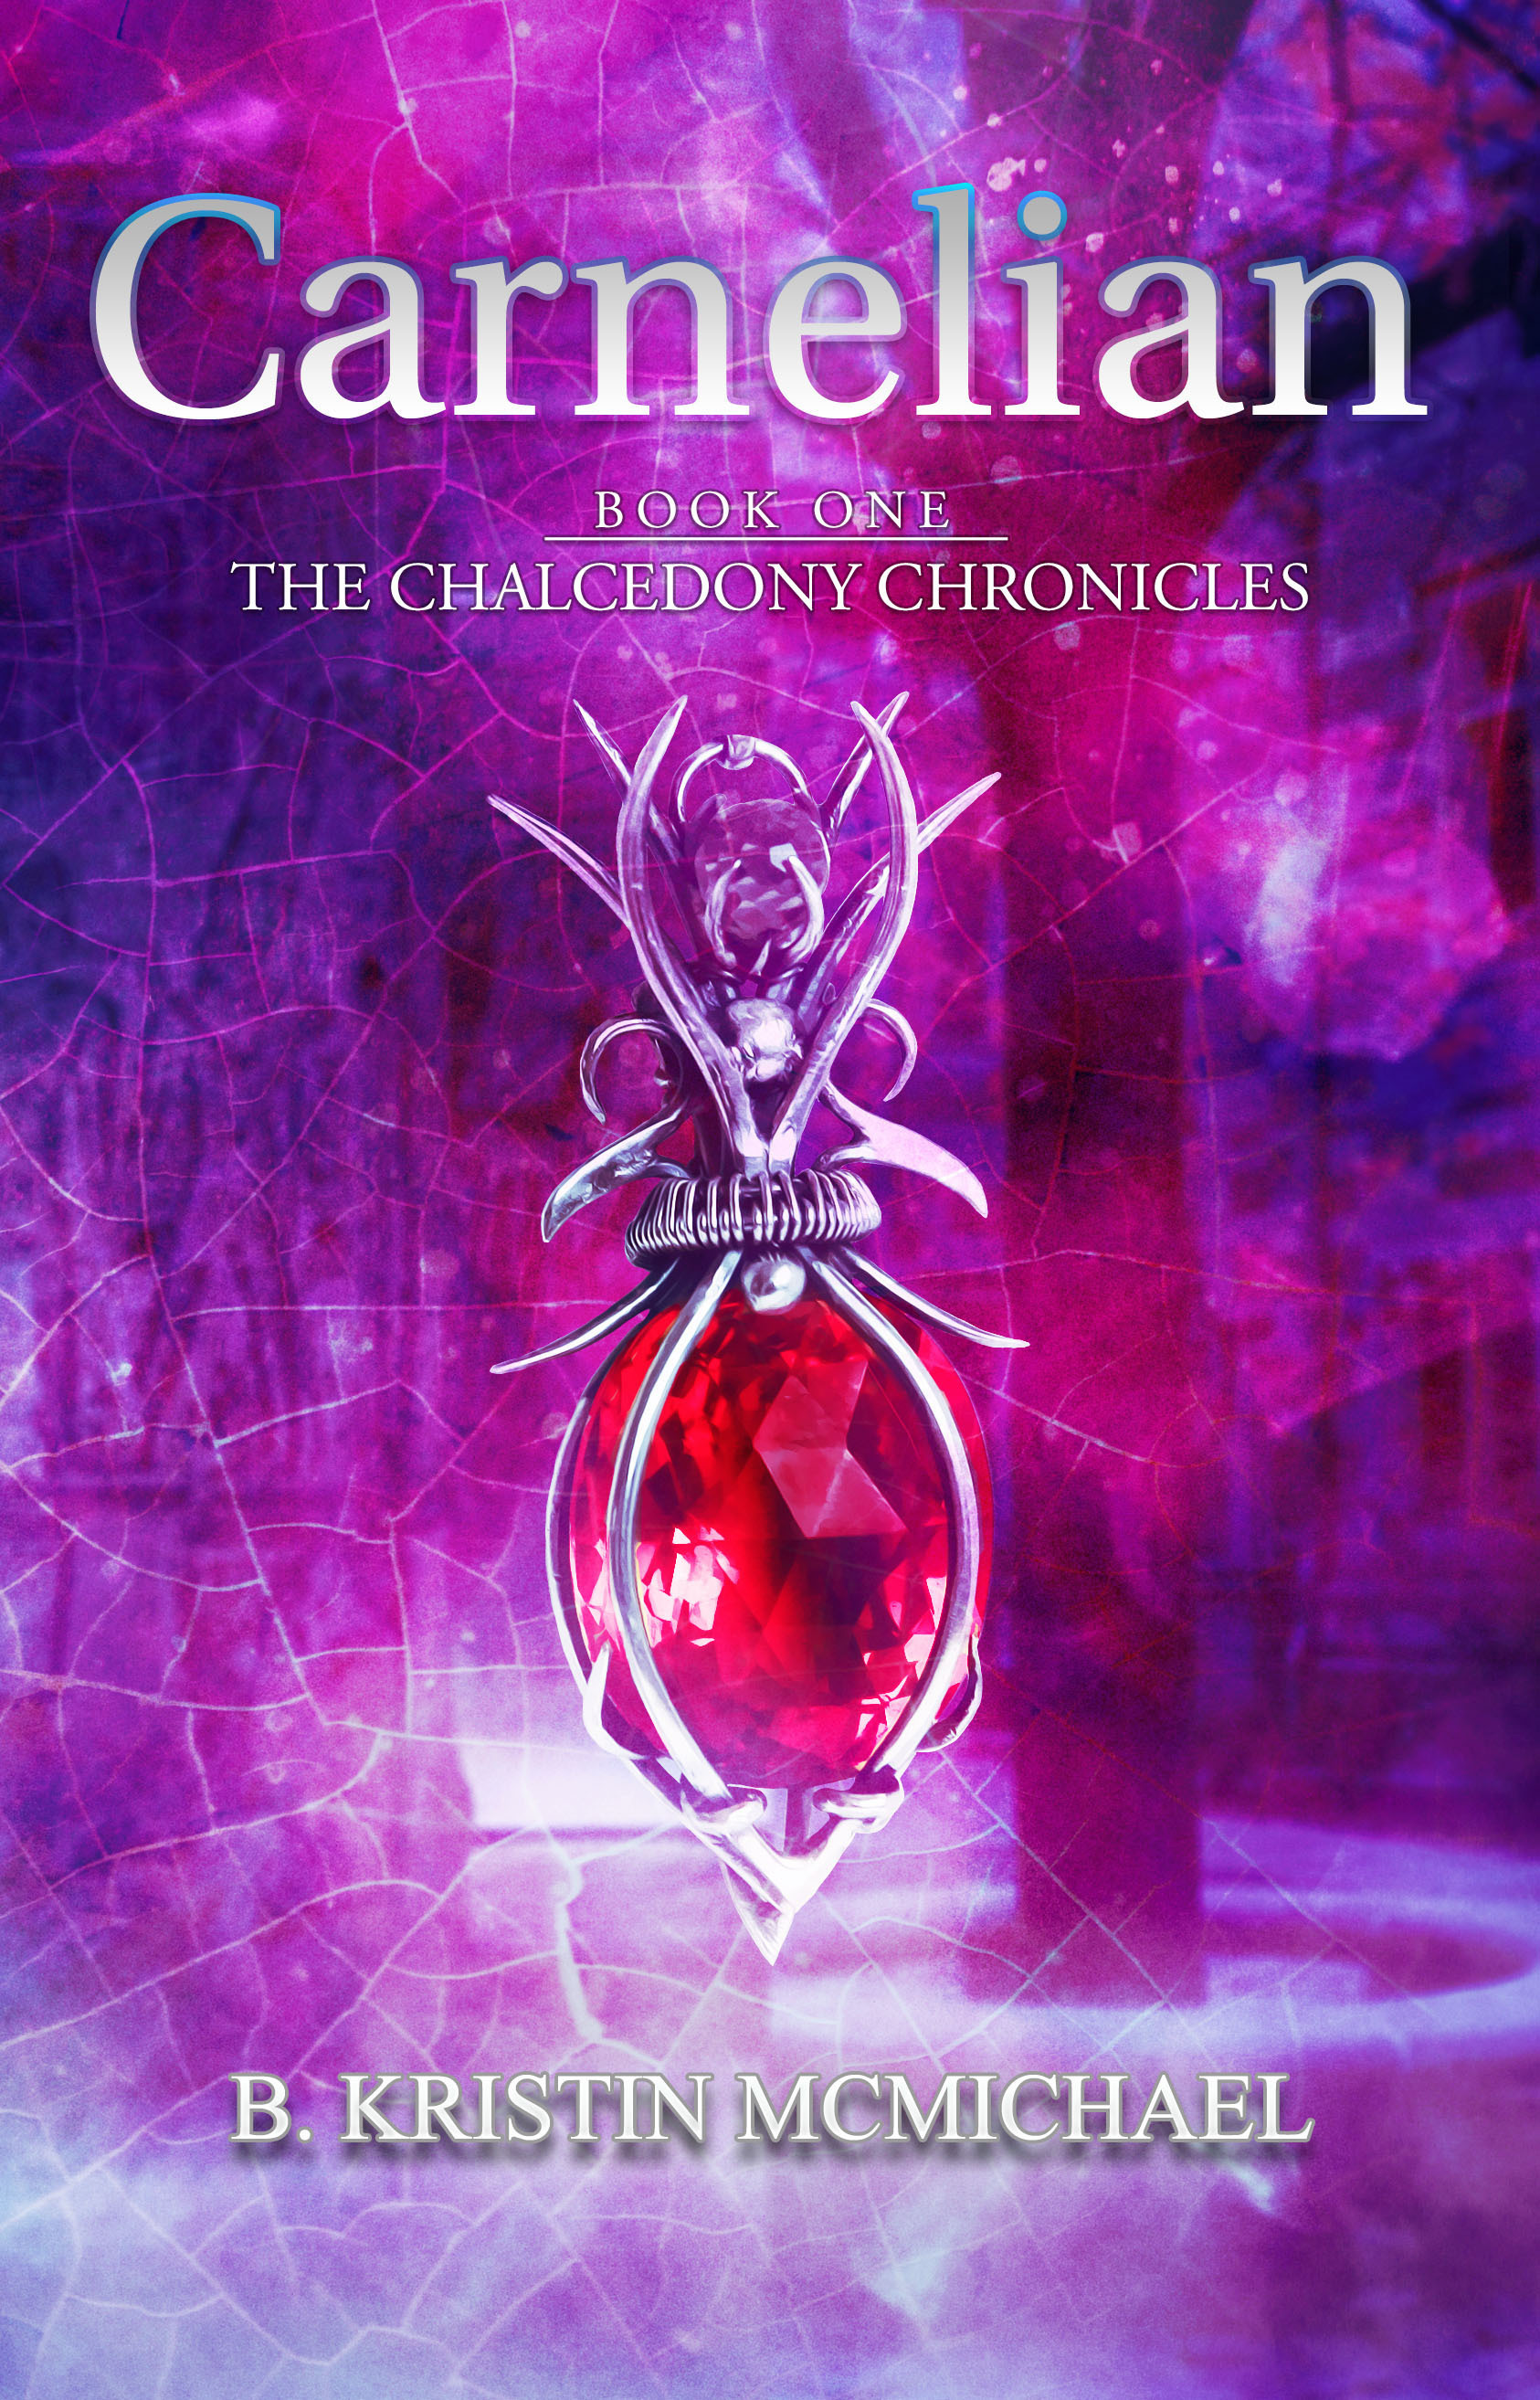 Book Release: 'Carnelian' by B. Kristin McMichael kicks off The Chalcedony Chronicles